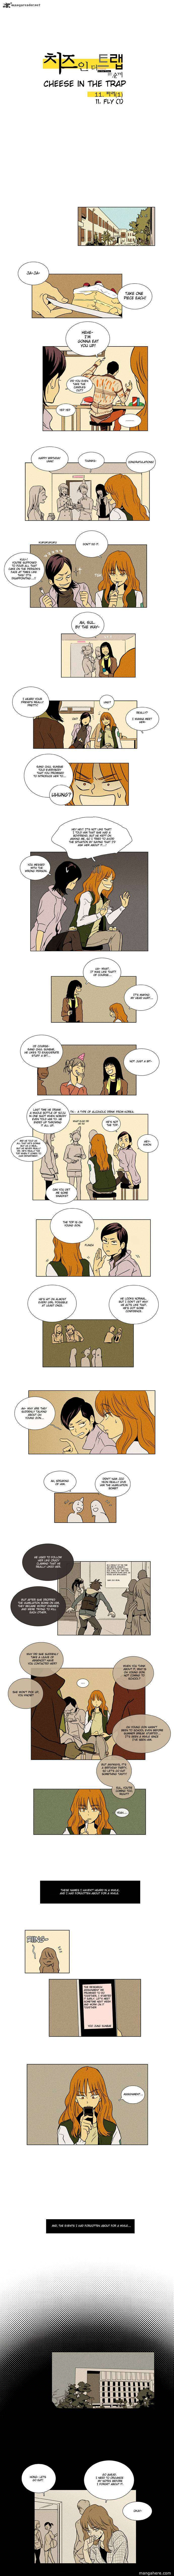 Cheese In The Trap 11 Page 1